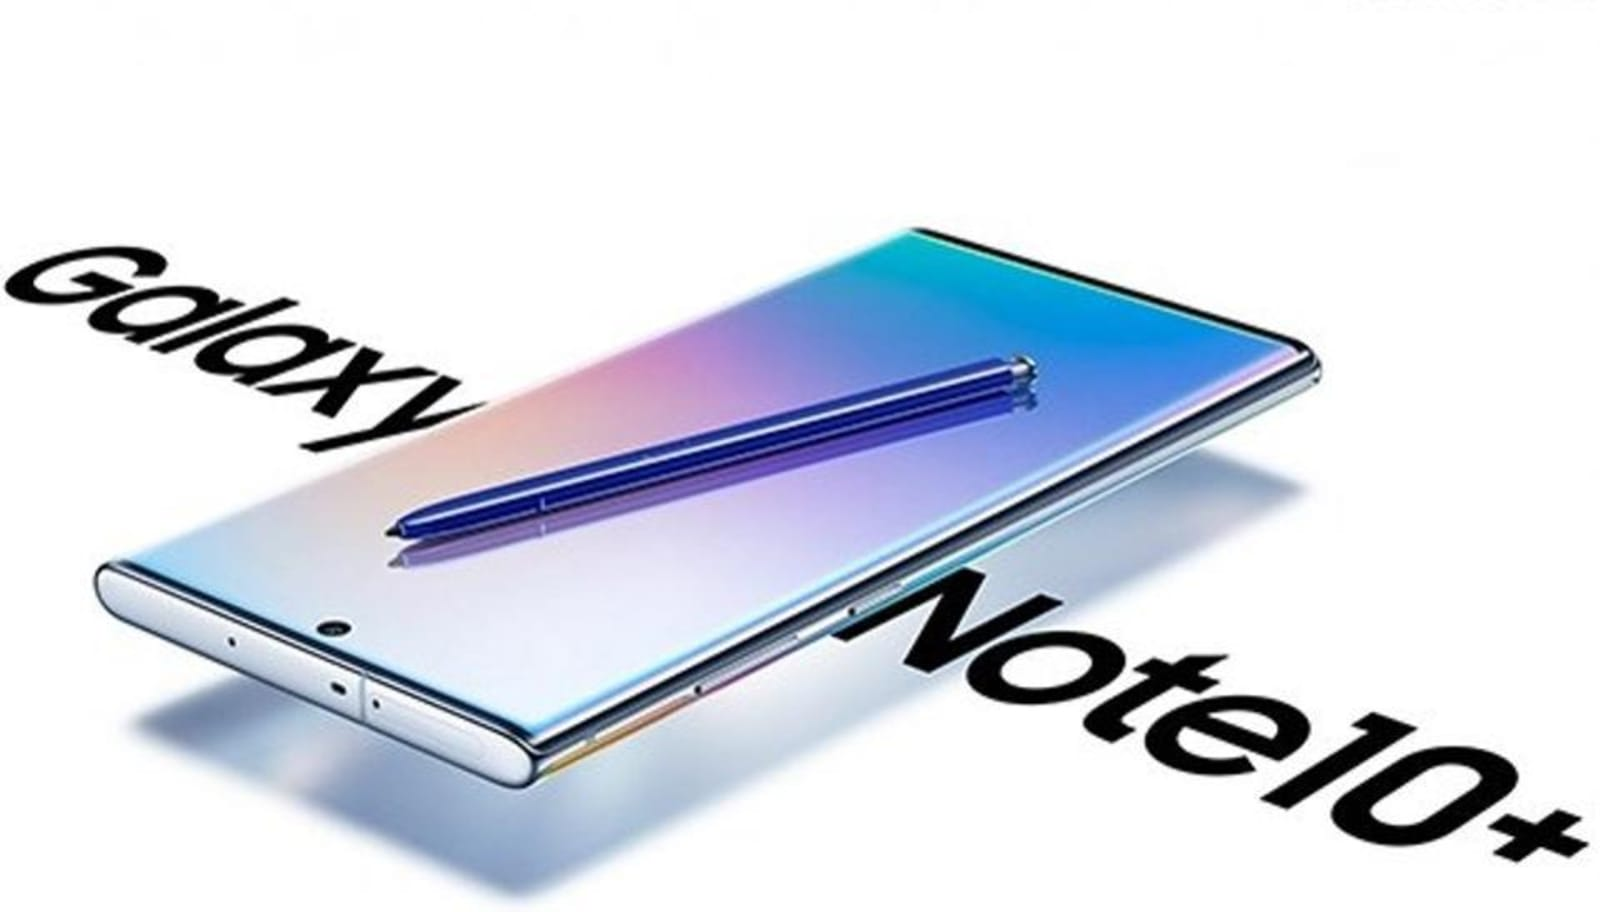 Samsung opens up Galaxy Note 10 reservations before official reveal